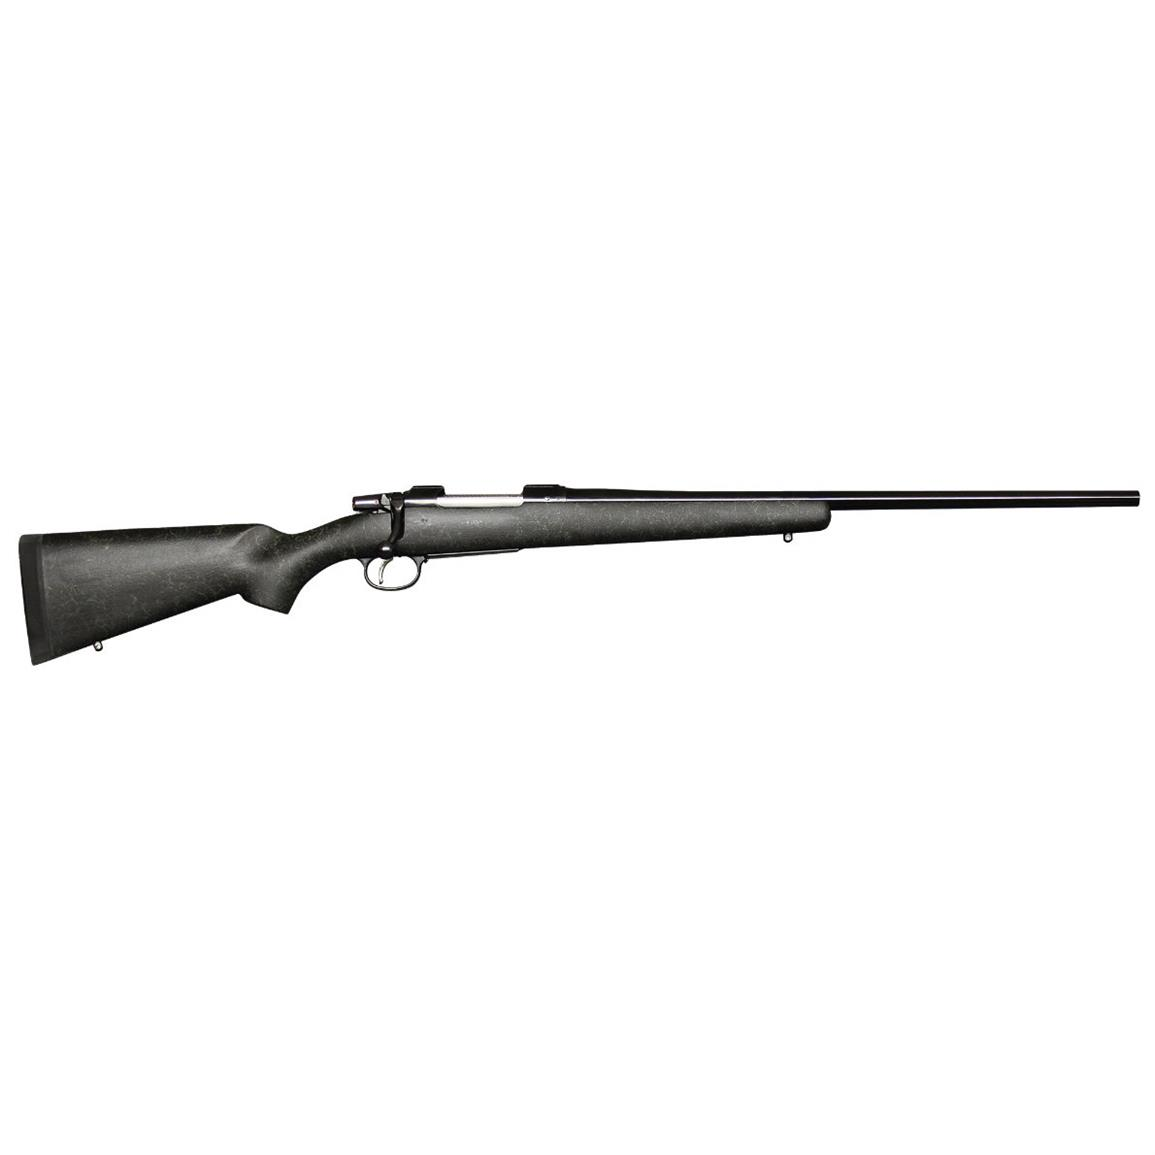 "CZ-USA 550 Ultimate Hunting, Bolt Action, .300 Winchester Magnum, 24"" Barrel, 3+1 Rounds"